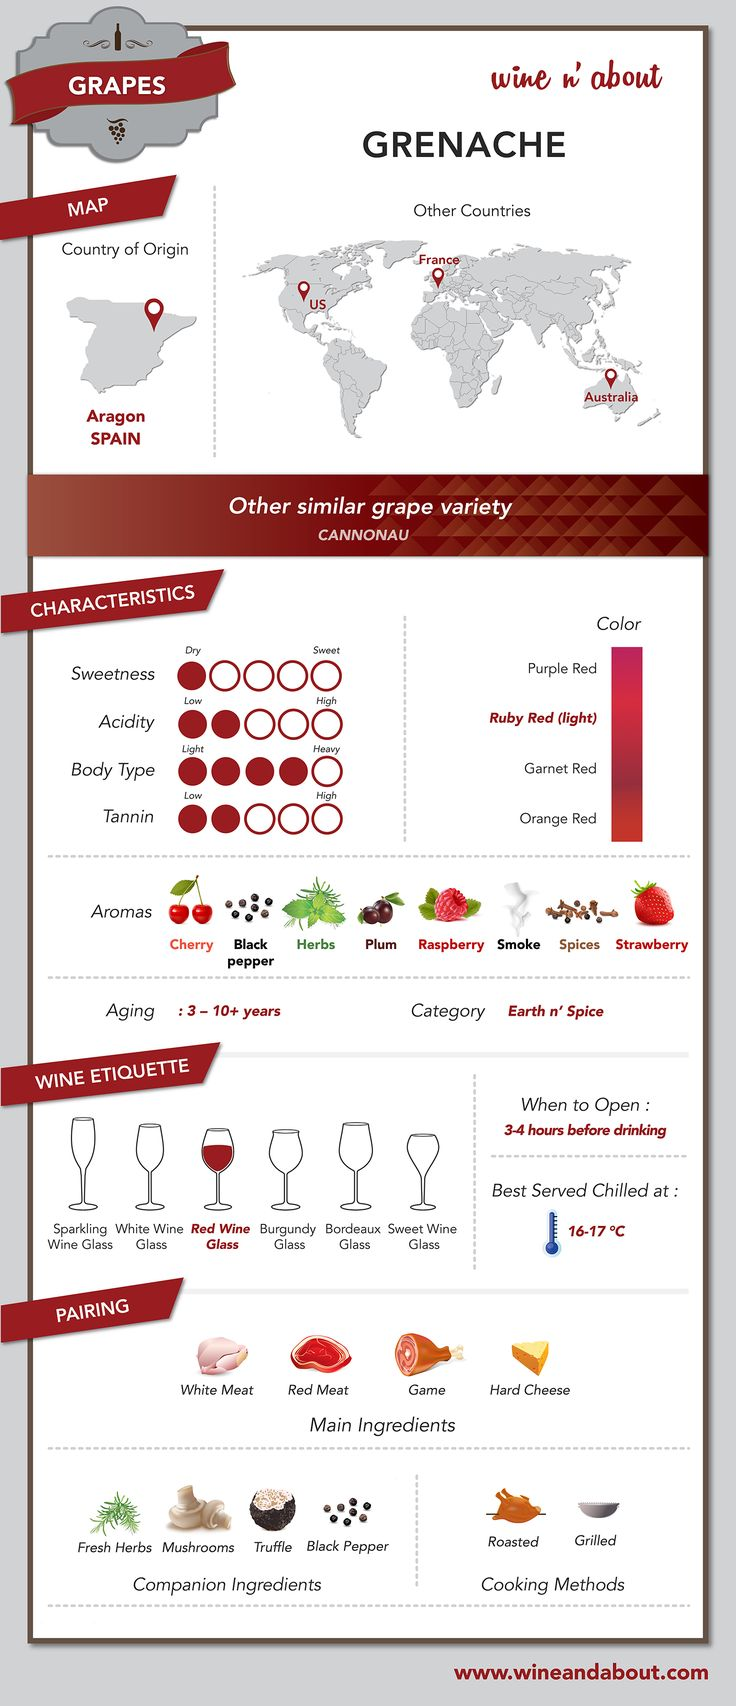 The grape variety called Grenache  is one of the most widely planted red wine grapes in the world. It is probably originated from Spain, where is widely diffused. Today can be found mainly – but not only - in the south of France, California and Australia.